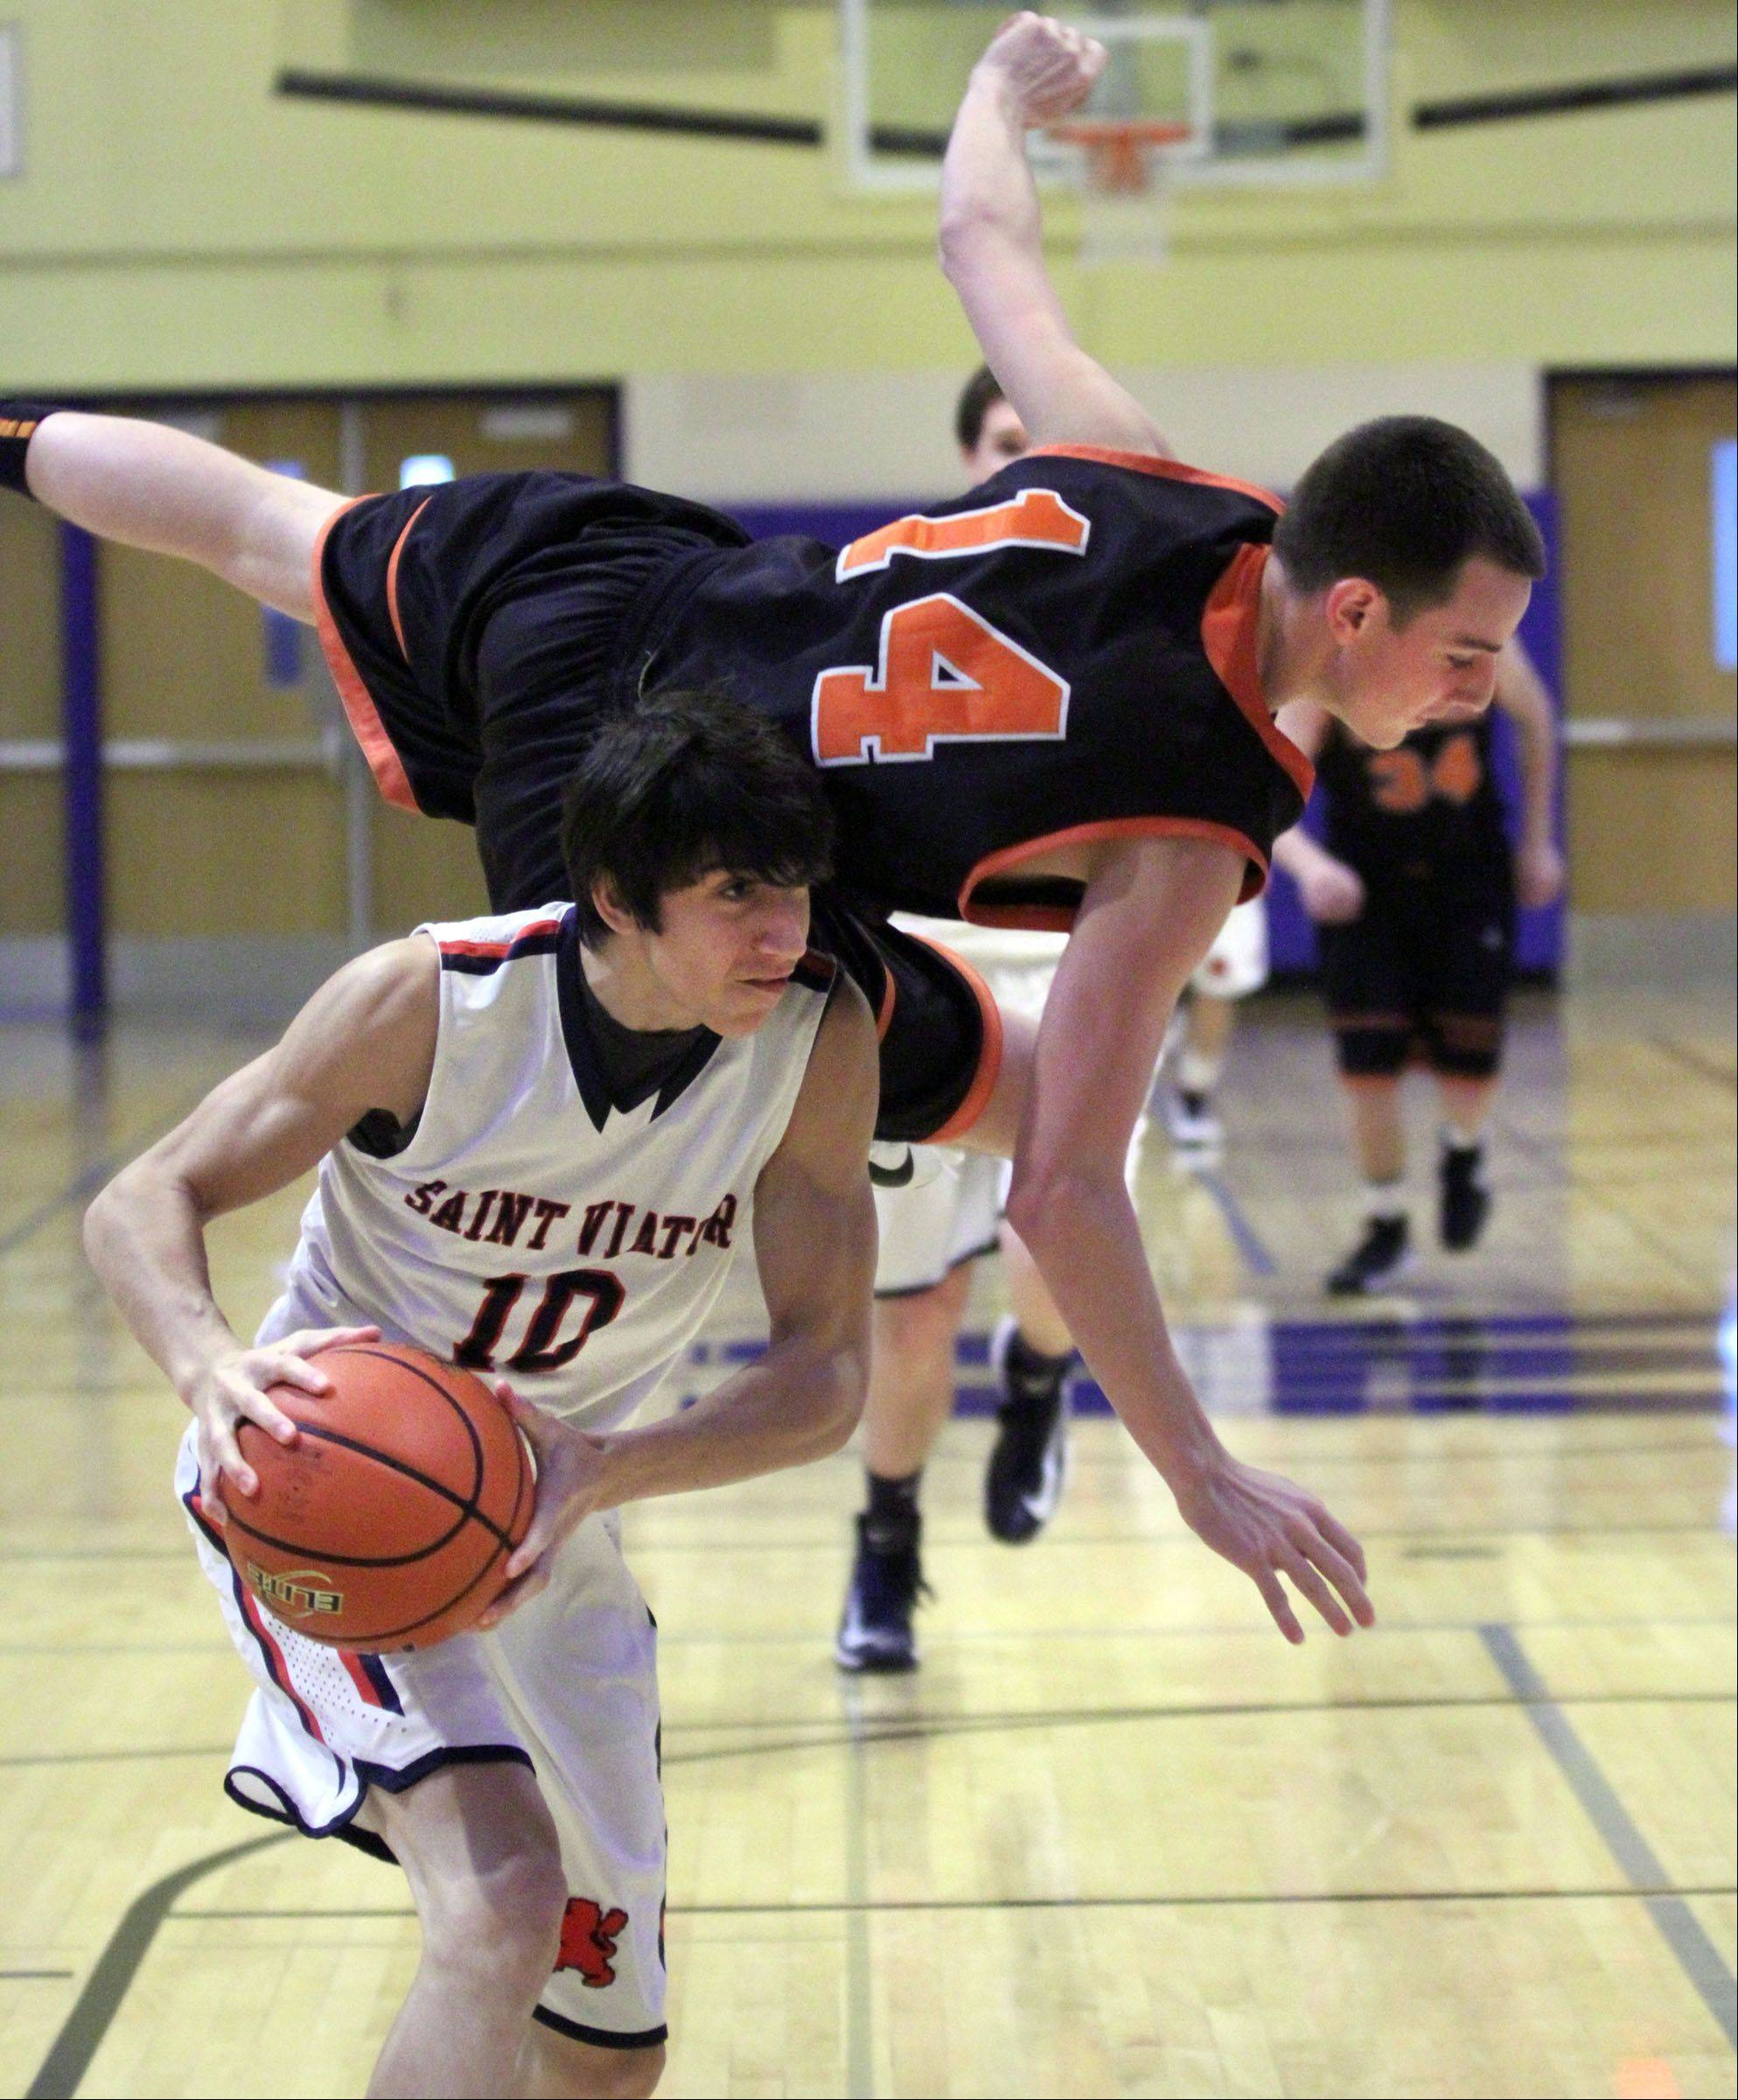 While trying to block a shot Libertyville defender, Drew Cayce falls over the back of St. Viator's Robert Grant at the 35th annual Hardwood Classic in Wheeling on Wednesday.